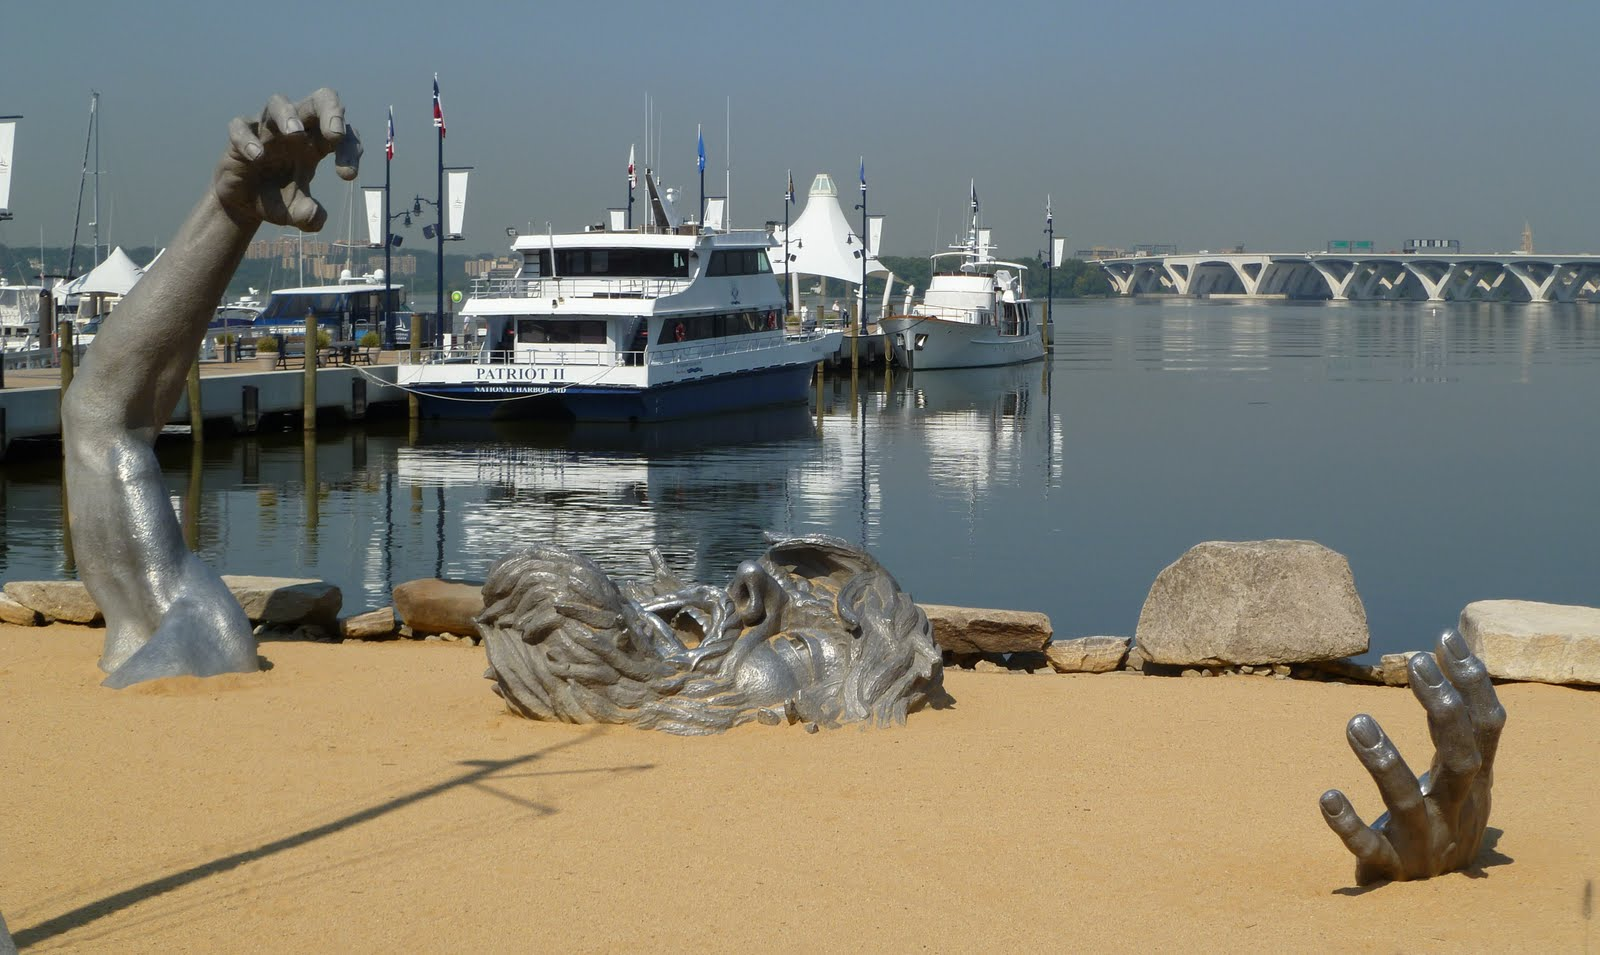 Comings and goings national harbor not disney on the for Awakening sculpture national harbor